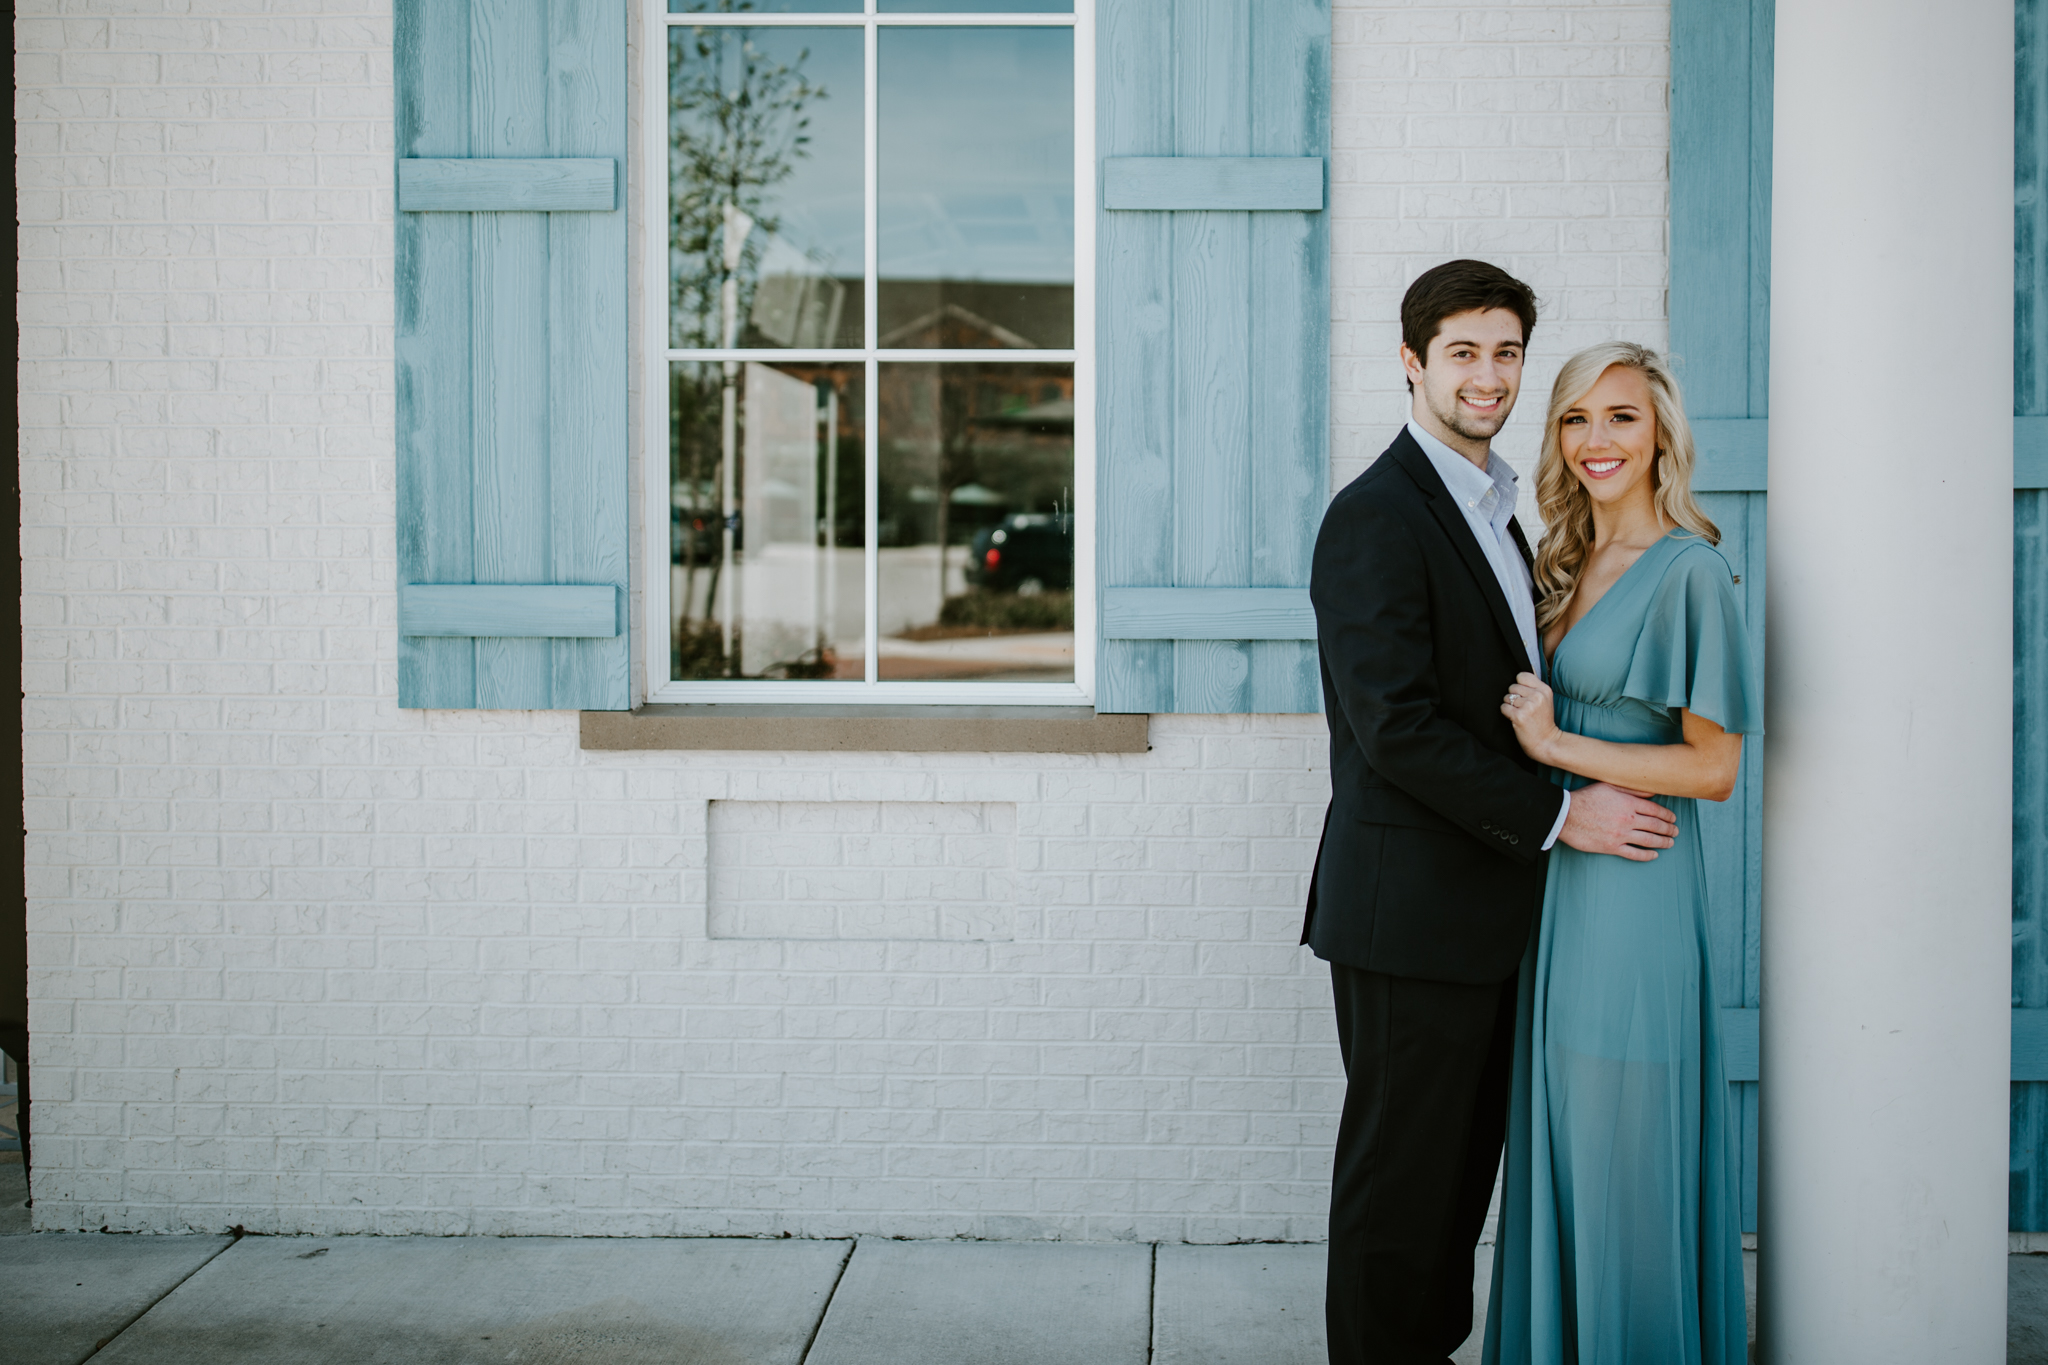 Ali-and-Jake-Chattanooga-Nashville-Tennessee-Wedding-Elopement-Photographer-83.jpg